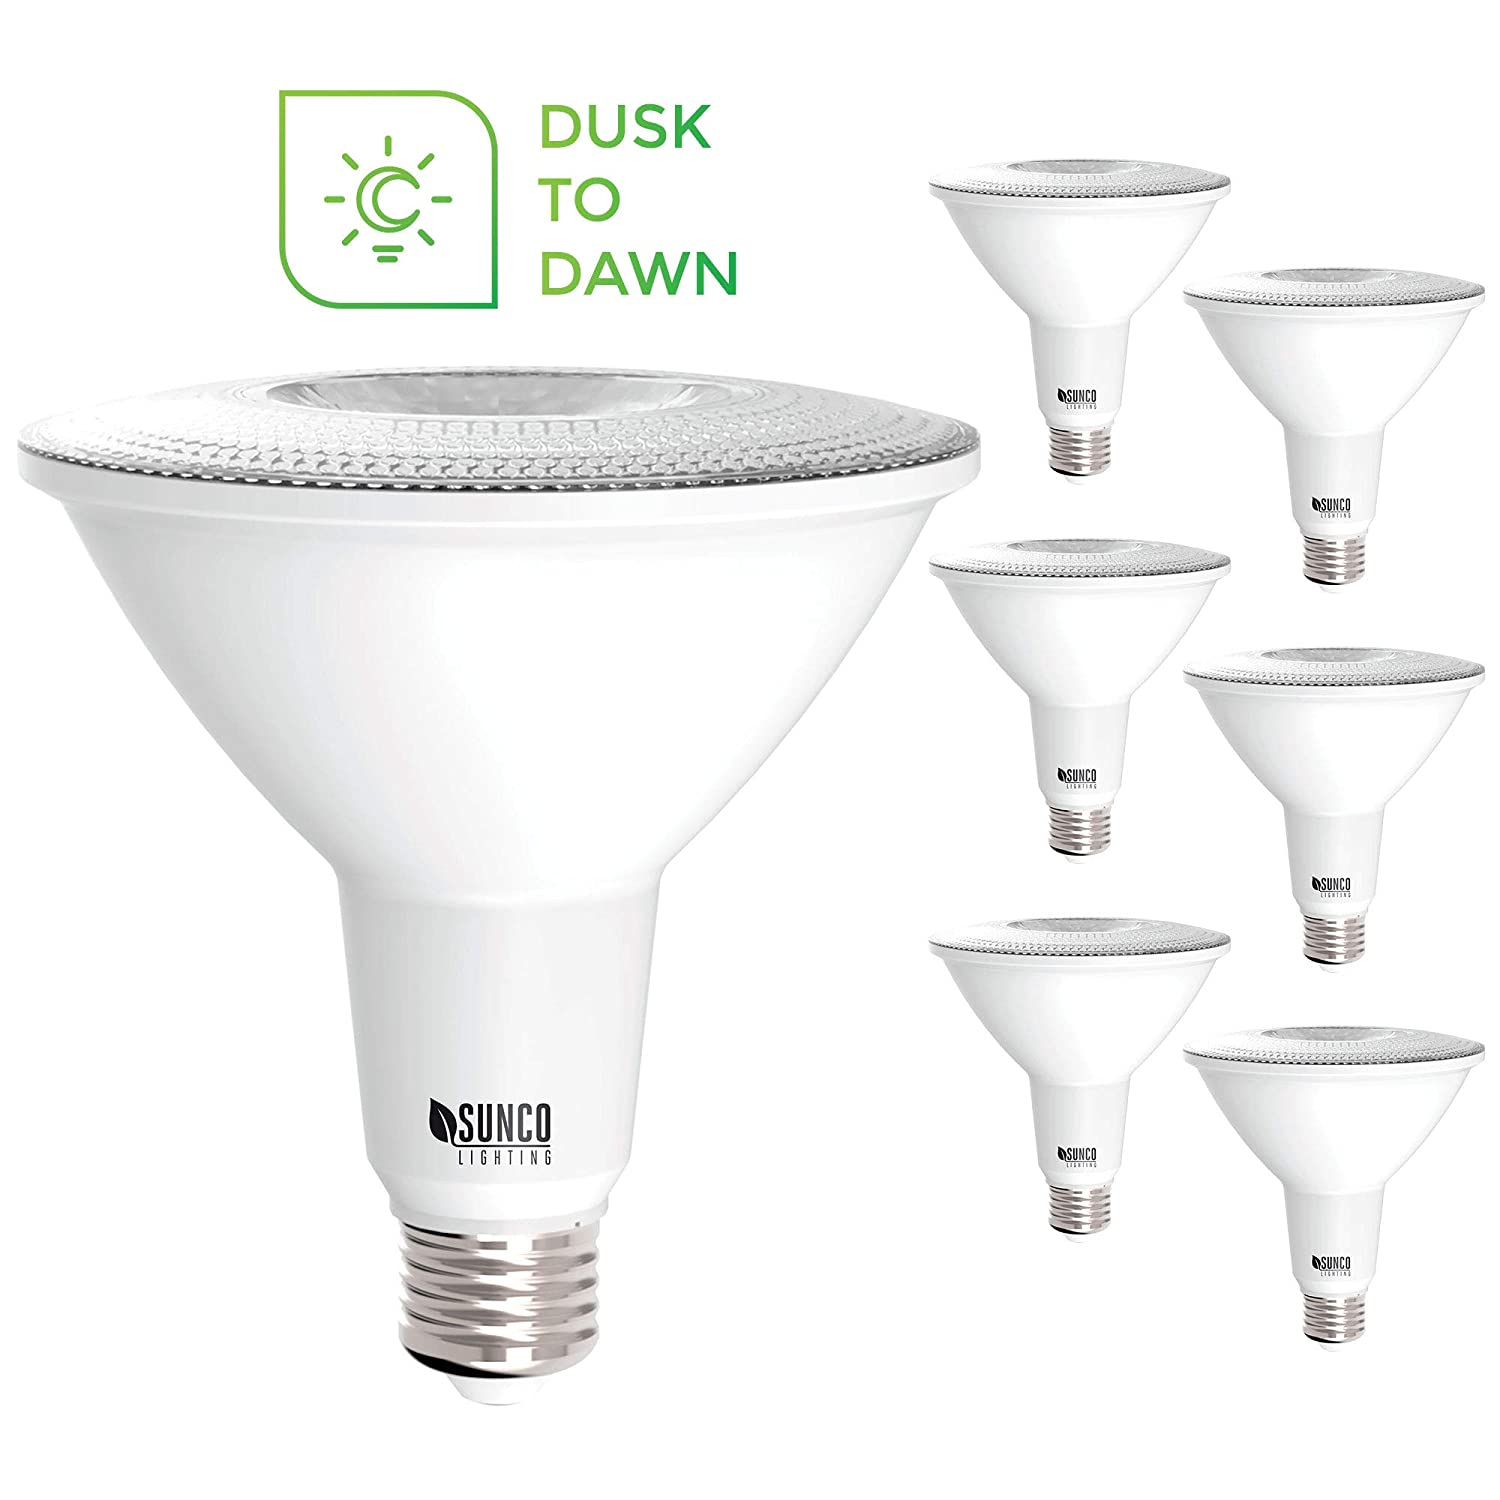 Sunco Lighting 6 Pack PAR38 LED Bulb with Dusk-to-Dawn Photocell Sensor, 15W=120W, 6000K Daylight Deluxe, 1250 LM, Auto On/Off, Security Flood Light Indoor/Outdoor - UL